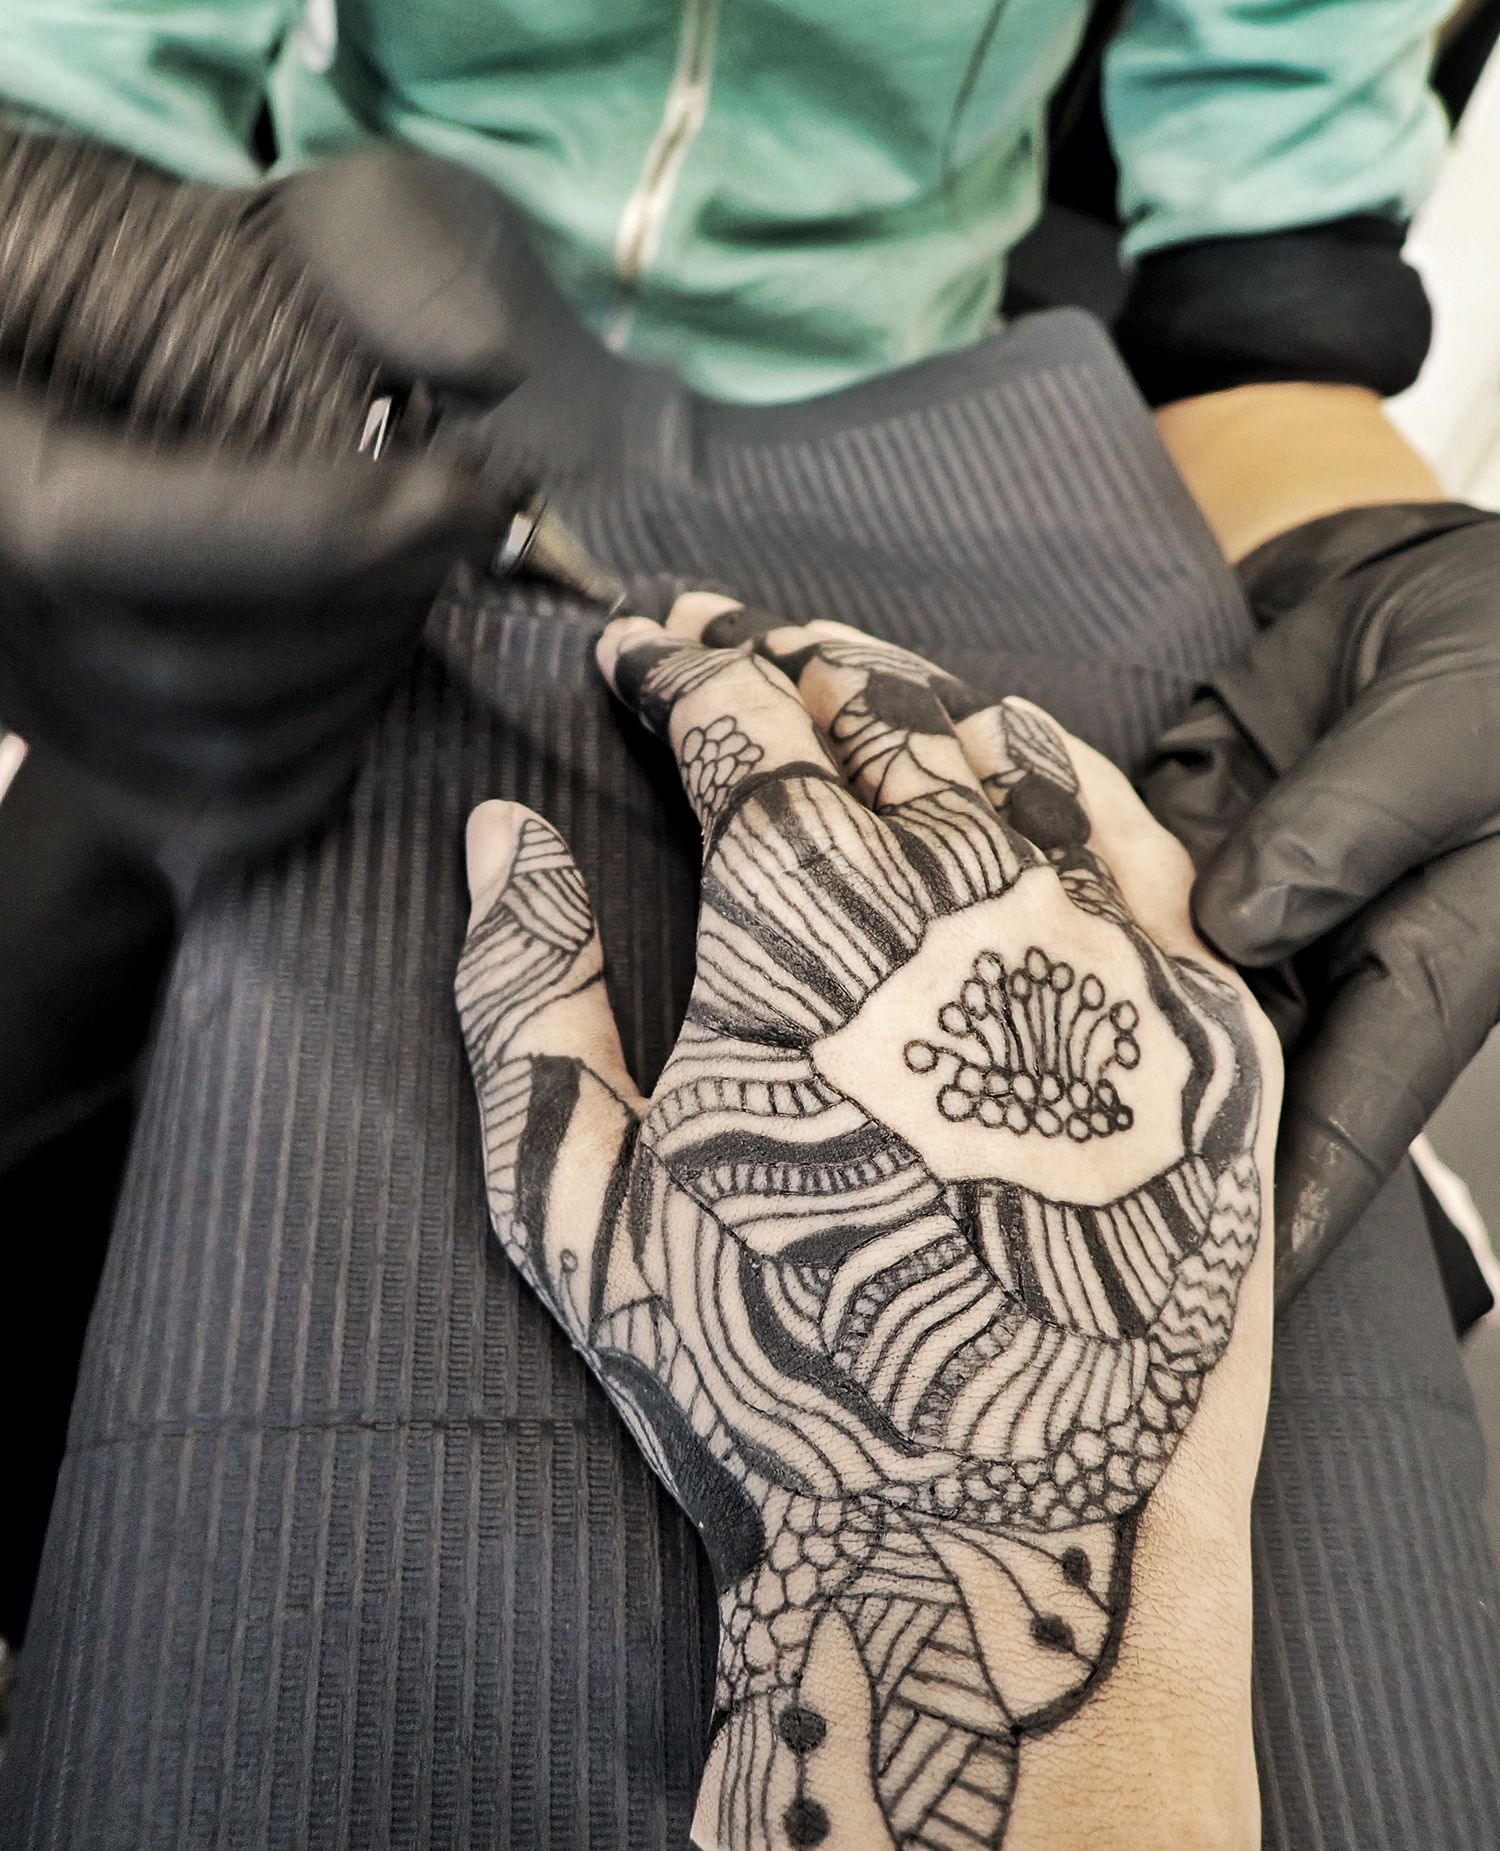 tattooing on silicone hand, blackwork